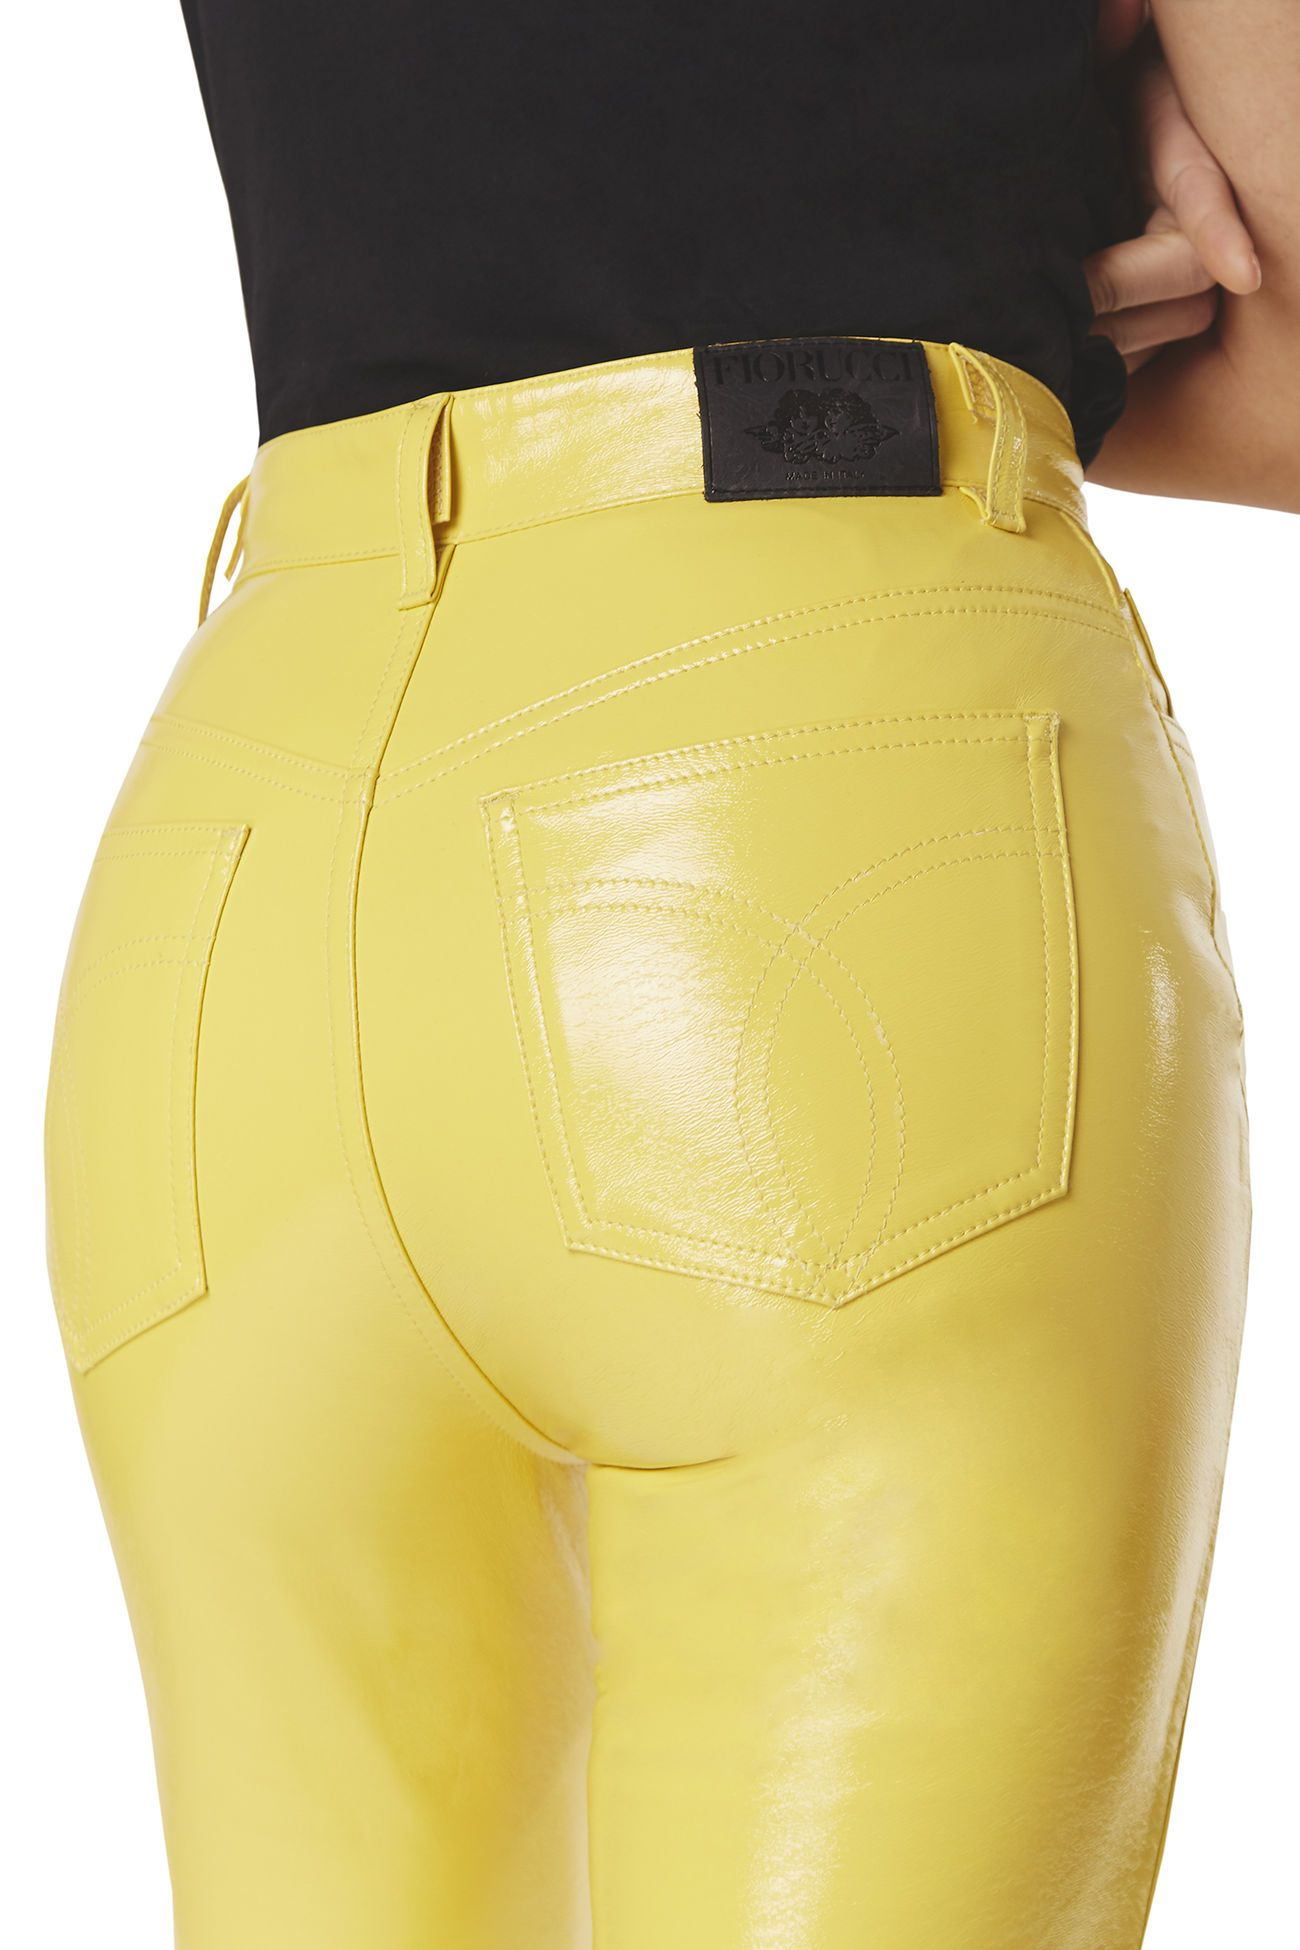 a2b5a7d816 Leather Midi Skirt, Tight Leather Pants, Leather Trousers, Trouser Pants,  Leather Leggings